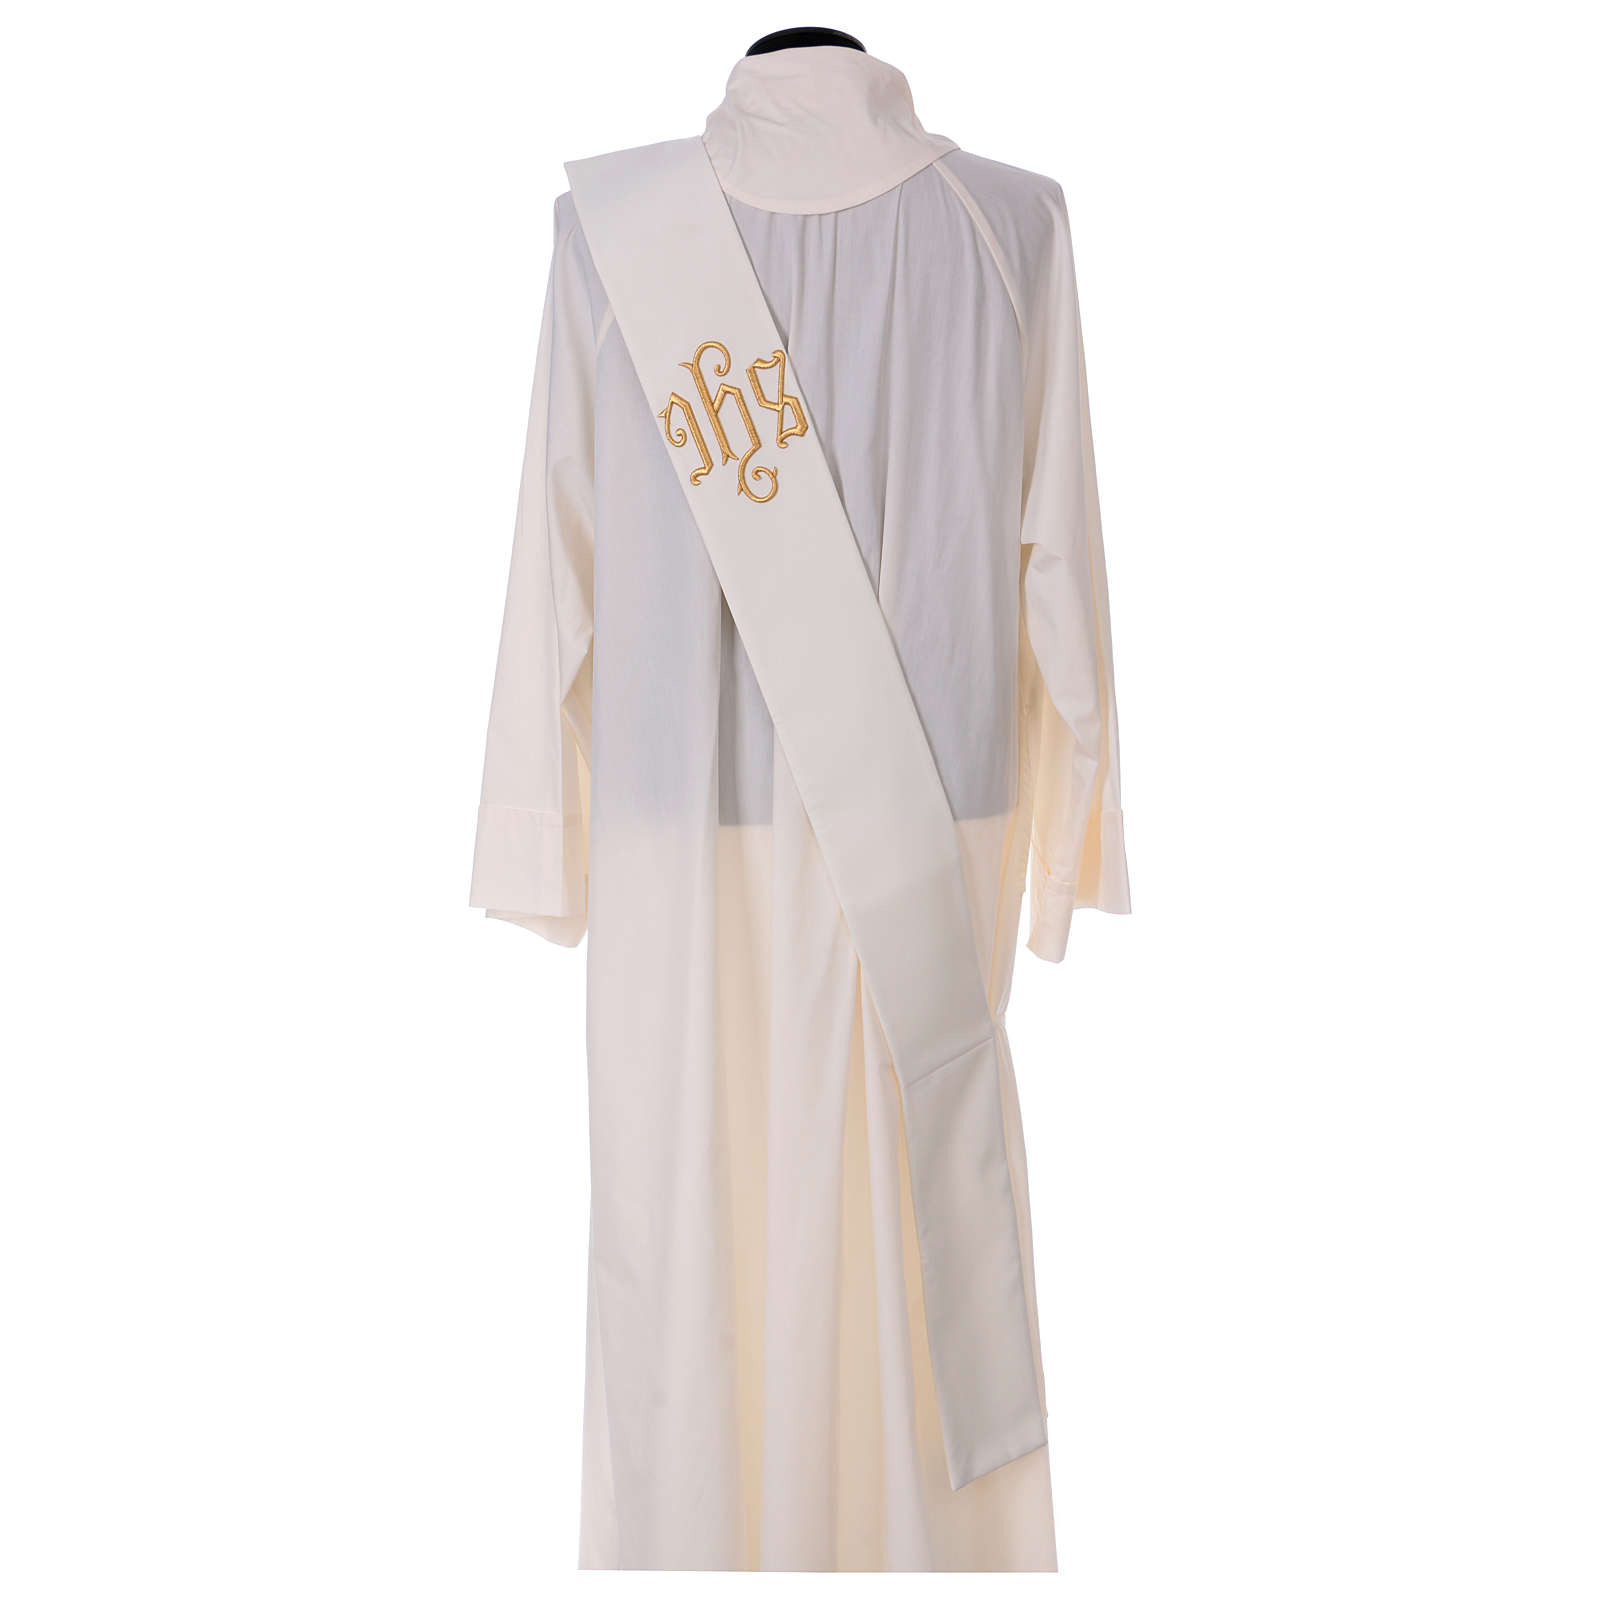 Diaconal stole, ivory colour with IHS decoration in relief 80% polyester 20% wool 4